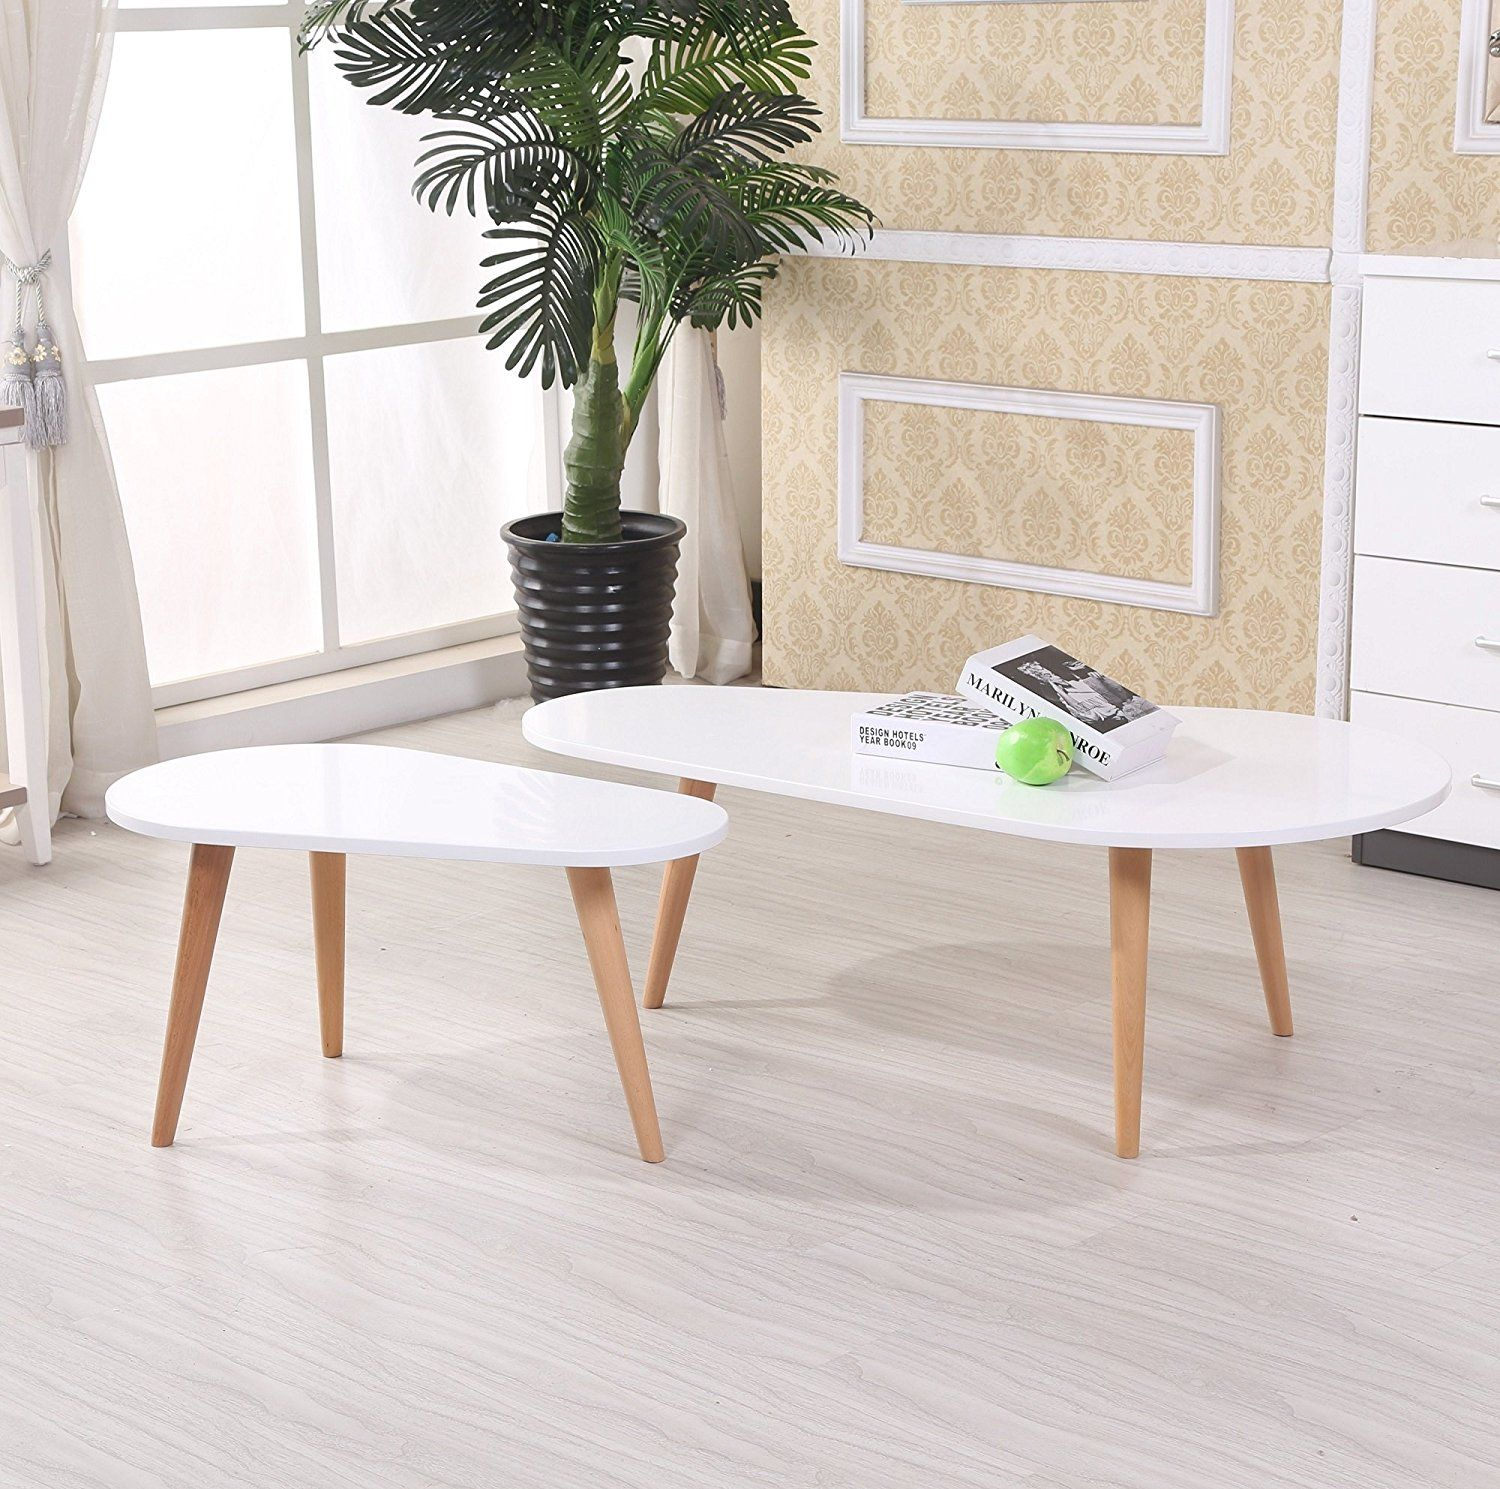 130 Us Pride Furniture Ct 238 Wh 2 Piece Wood Coffee Table Set White Home Amp Kitchen Mid Century Style Coffee Table Coffee Table Coffee Table Wood [ 1489 x 1500 Pixel ]